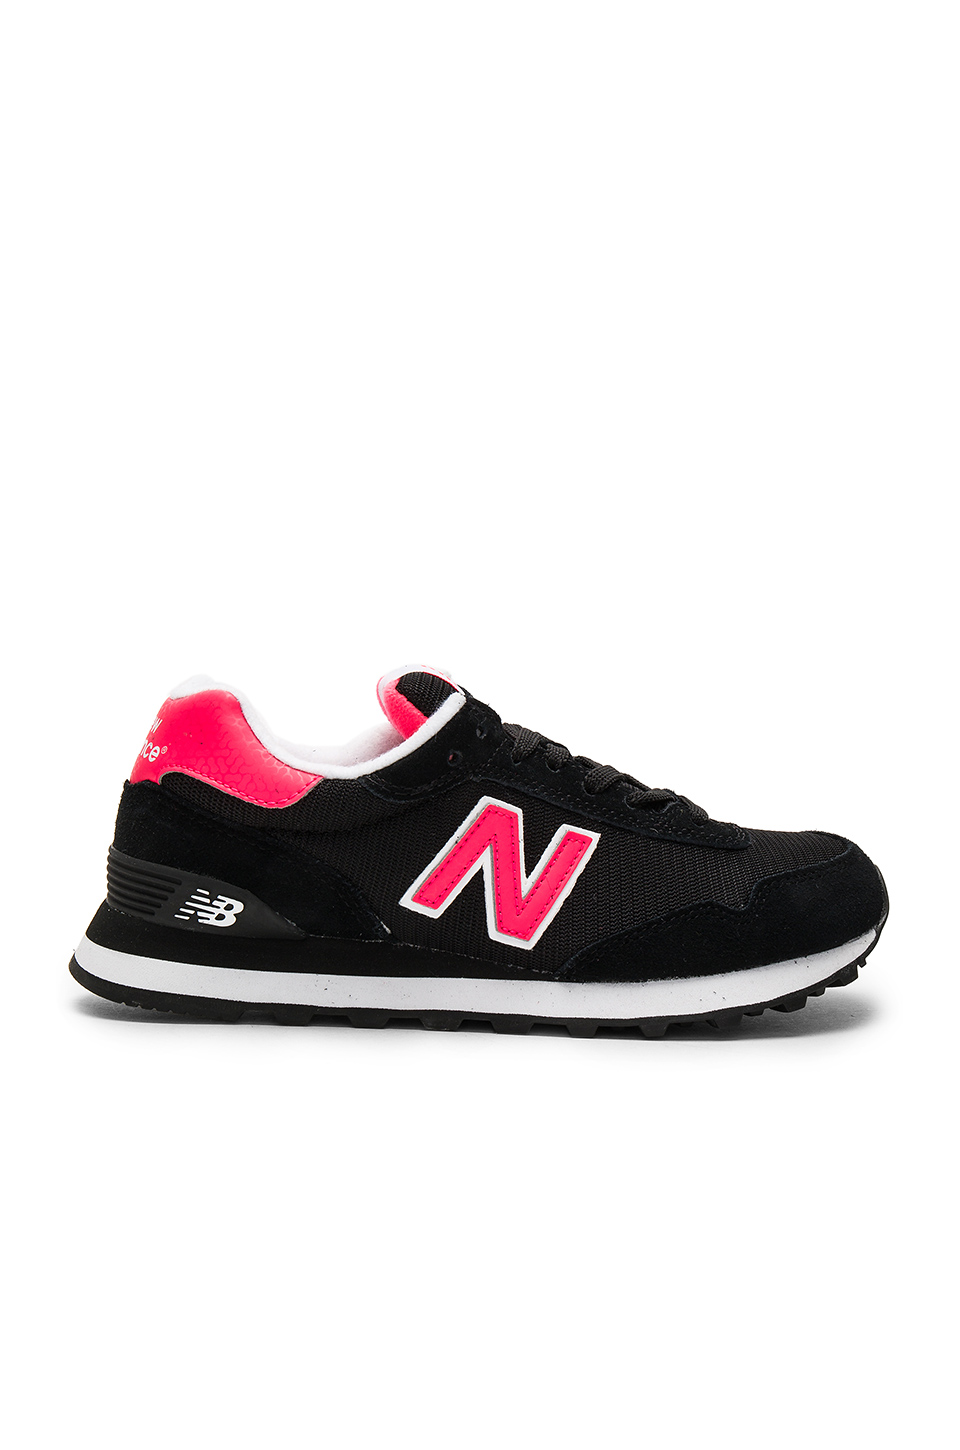 NEW BALANCE 515 Sneaker In Black. in Black & Bright Cherry